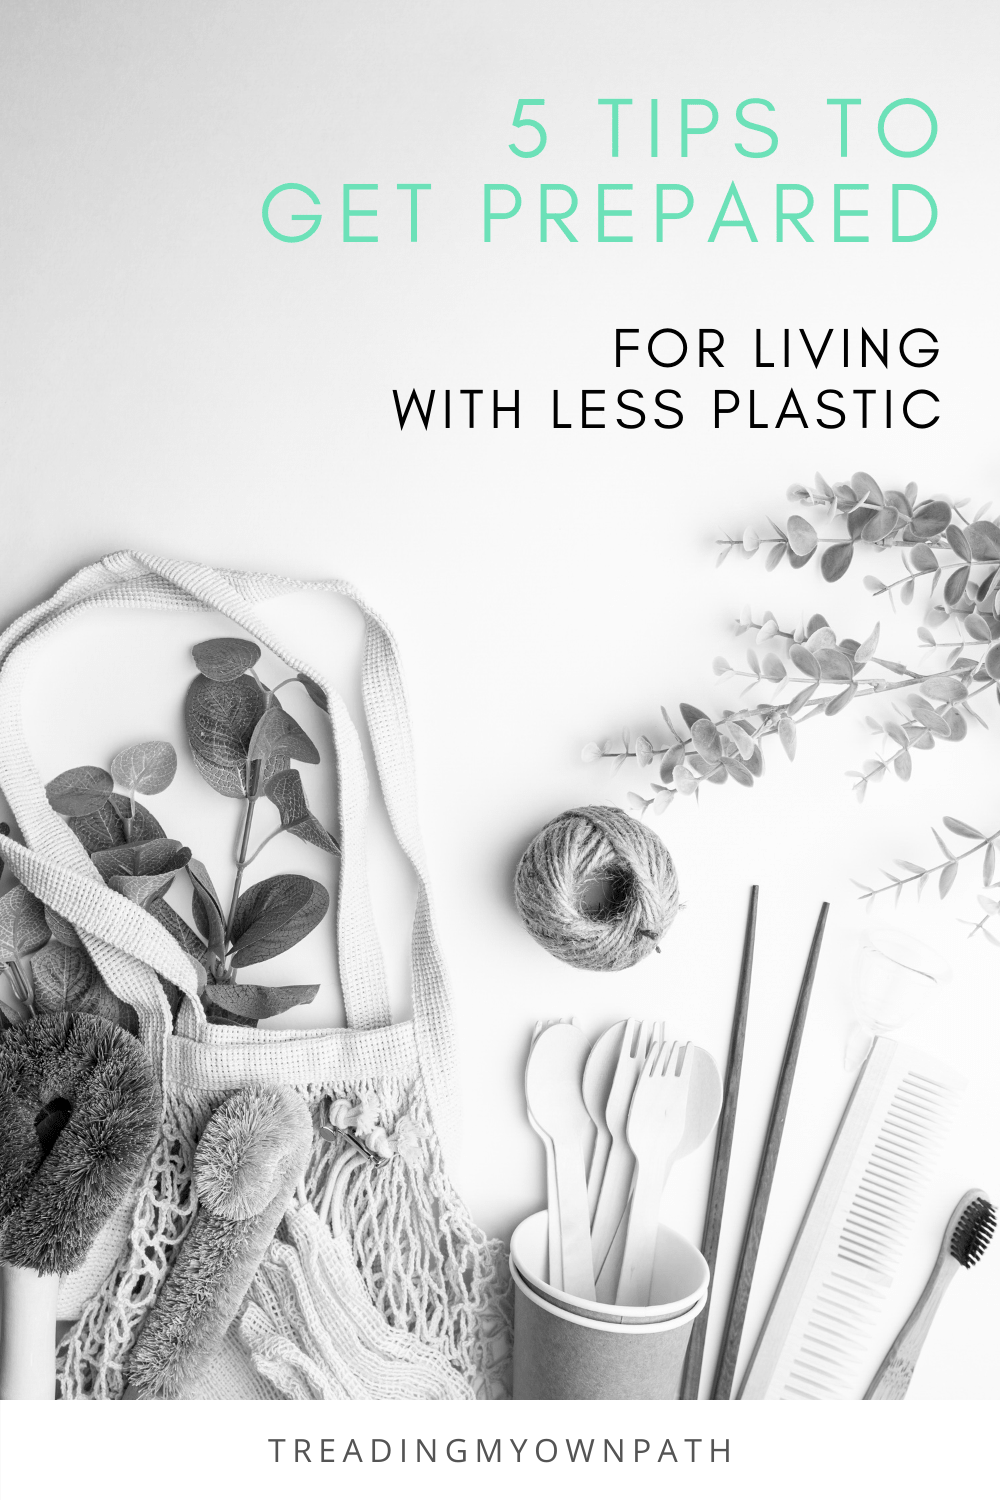 5 tips to get prepped for Plastic Free July (and living with less plastic)